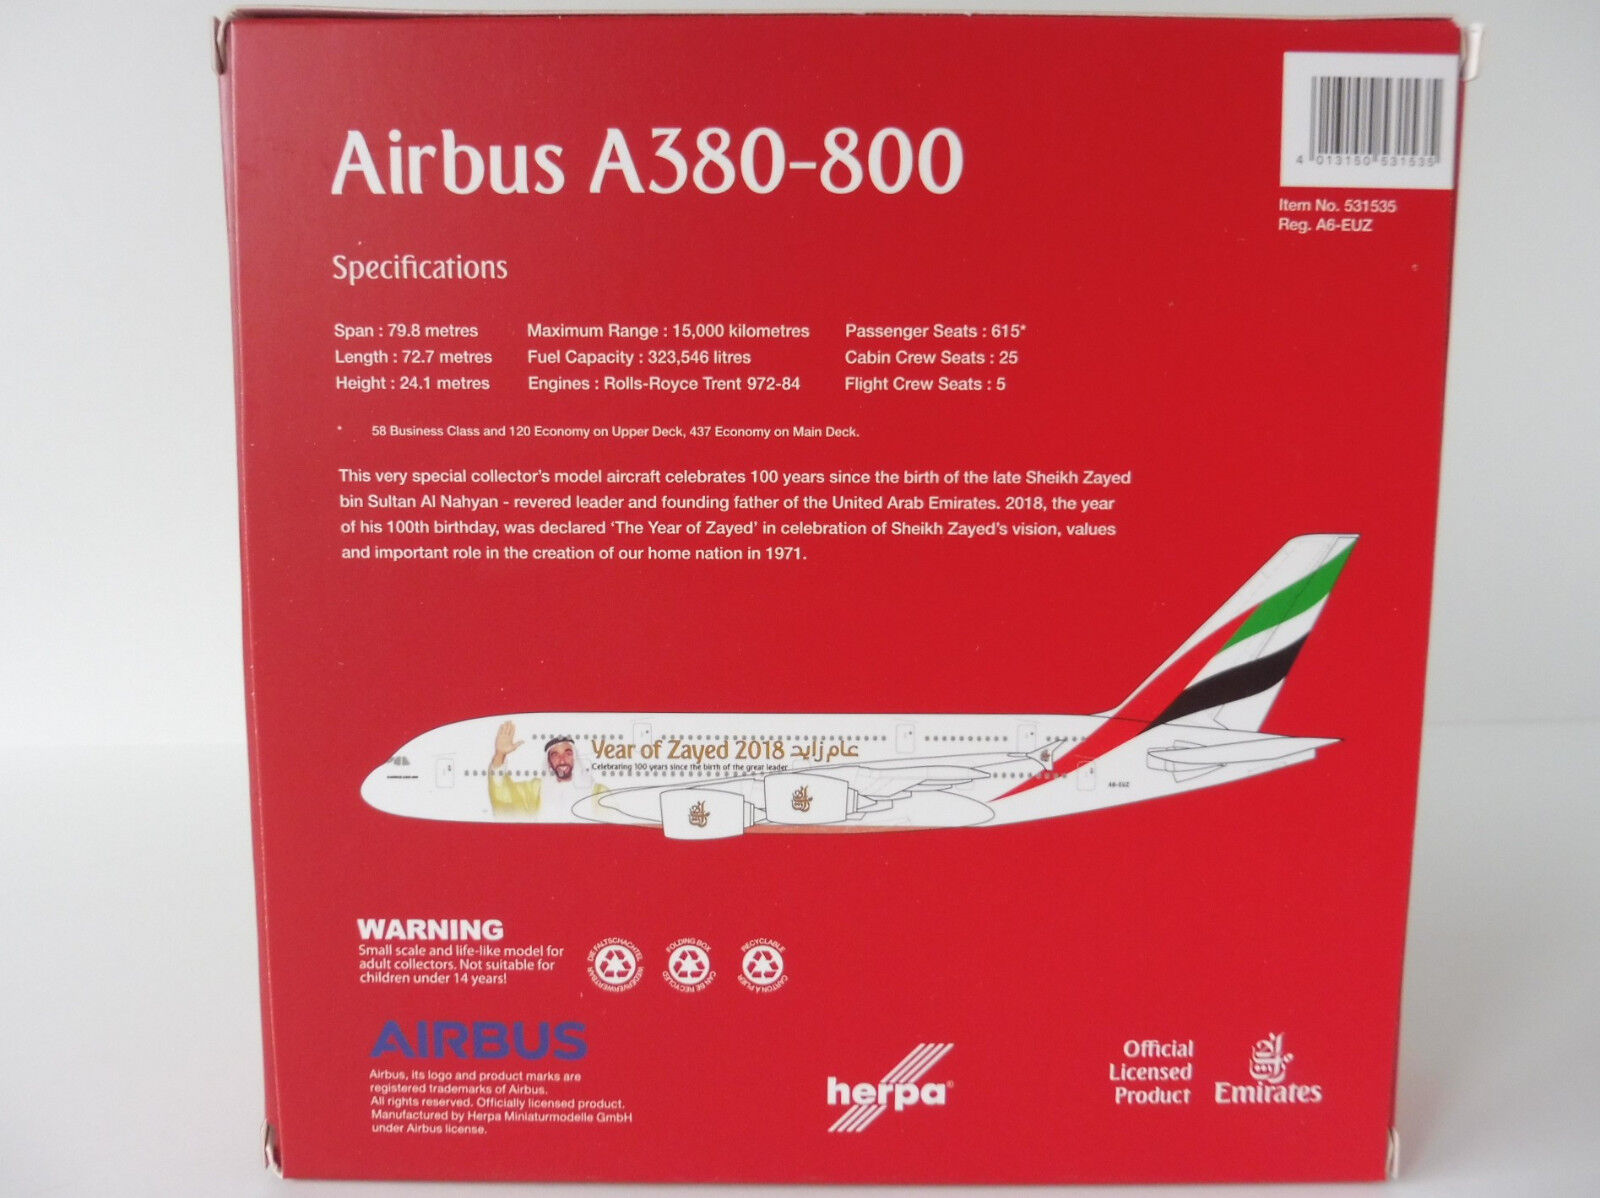 Emirates Airbus Airbus Airbus A380-800 Year Of Zayed 2018 1 500 Herpa 531535 a 380 A380 a7206e